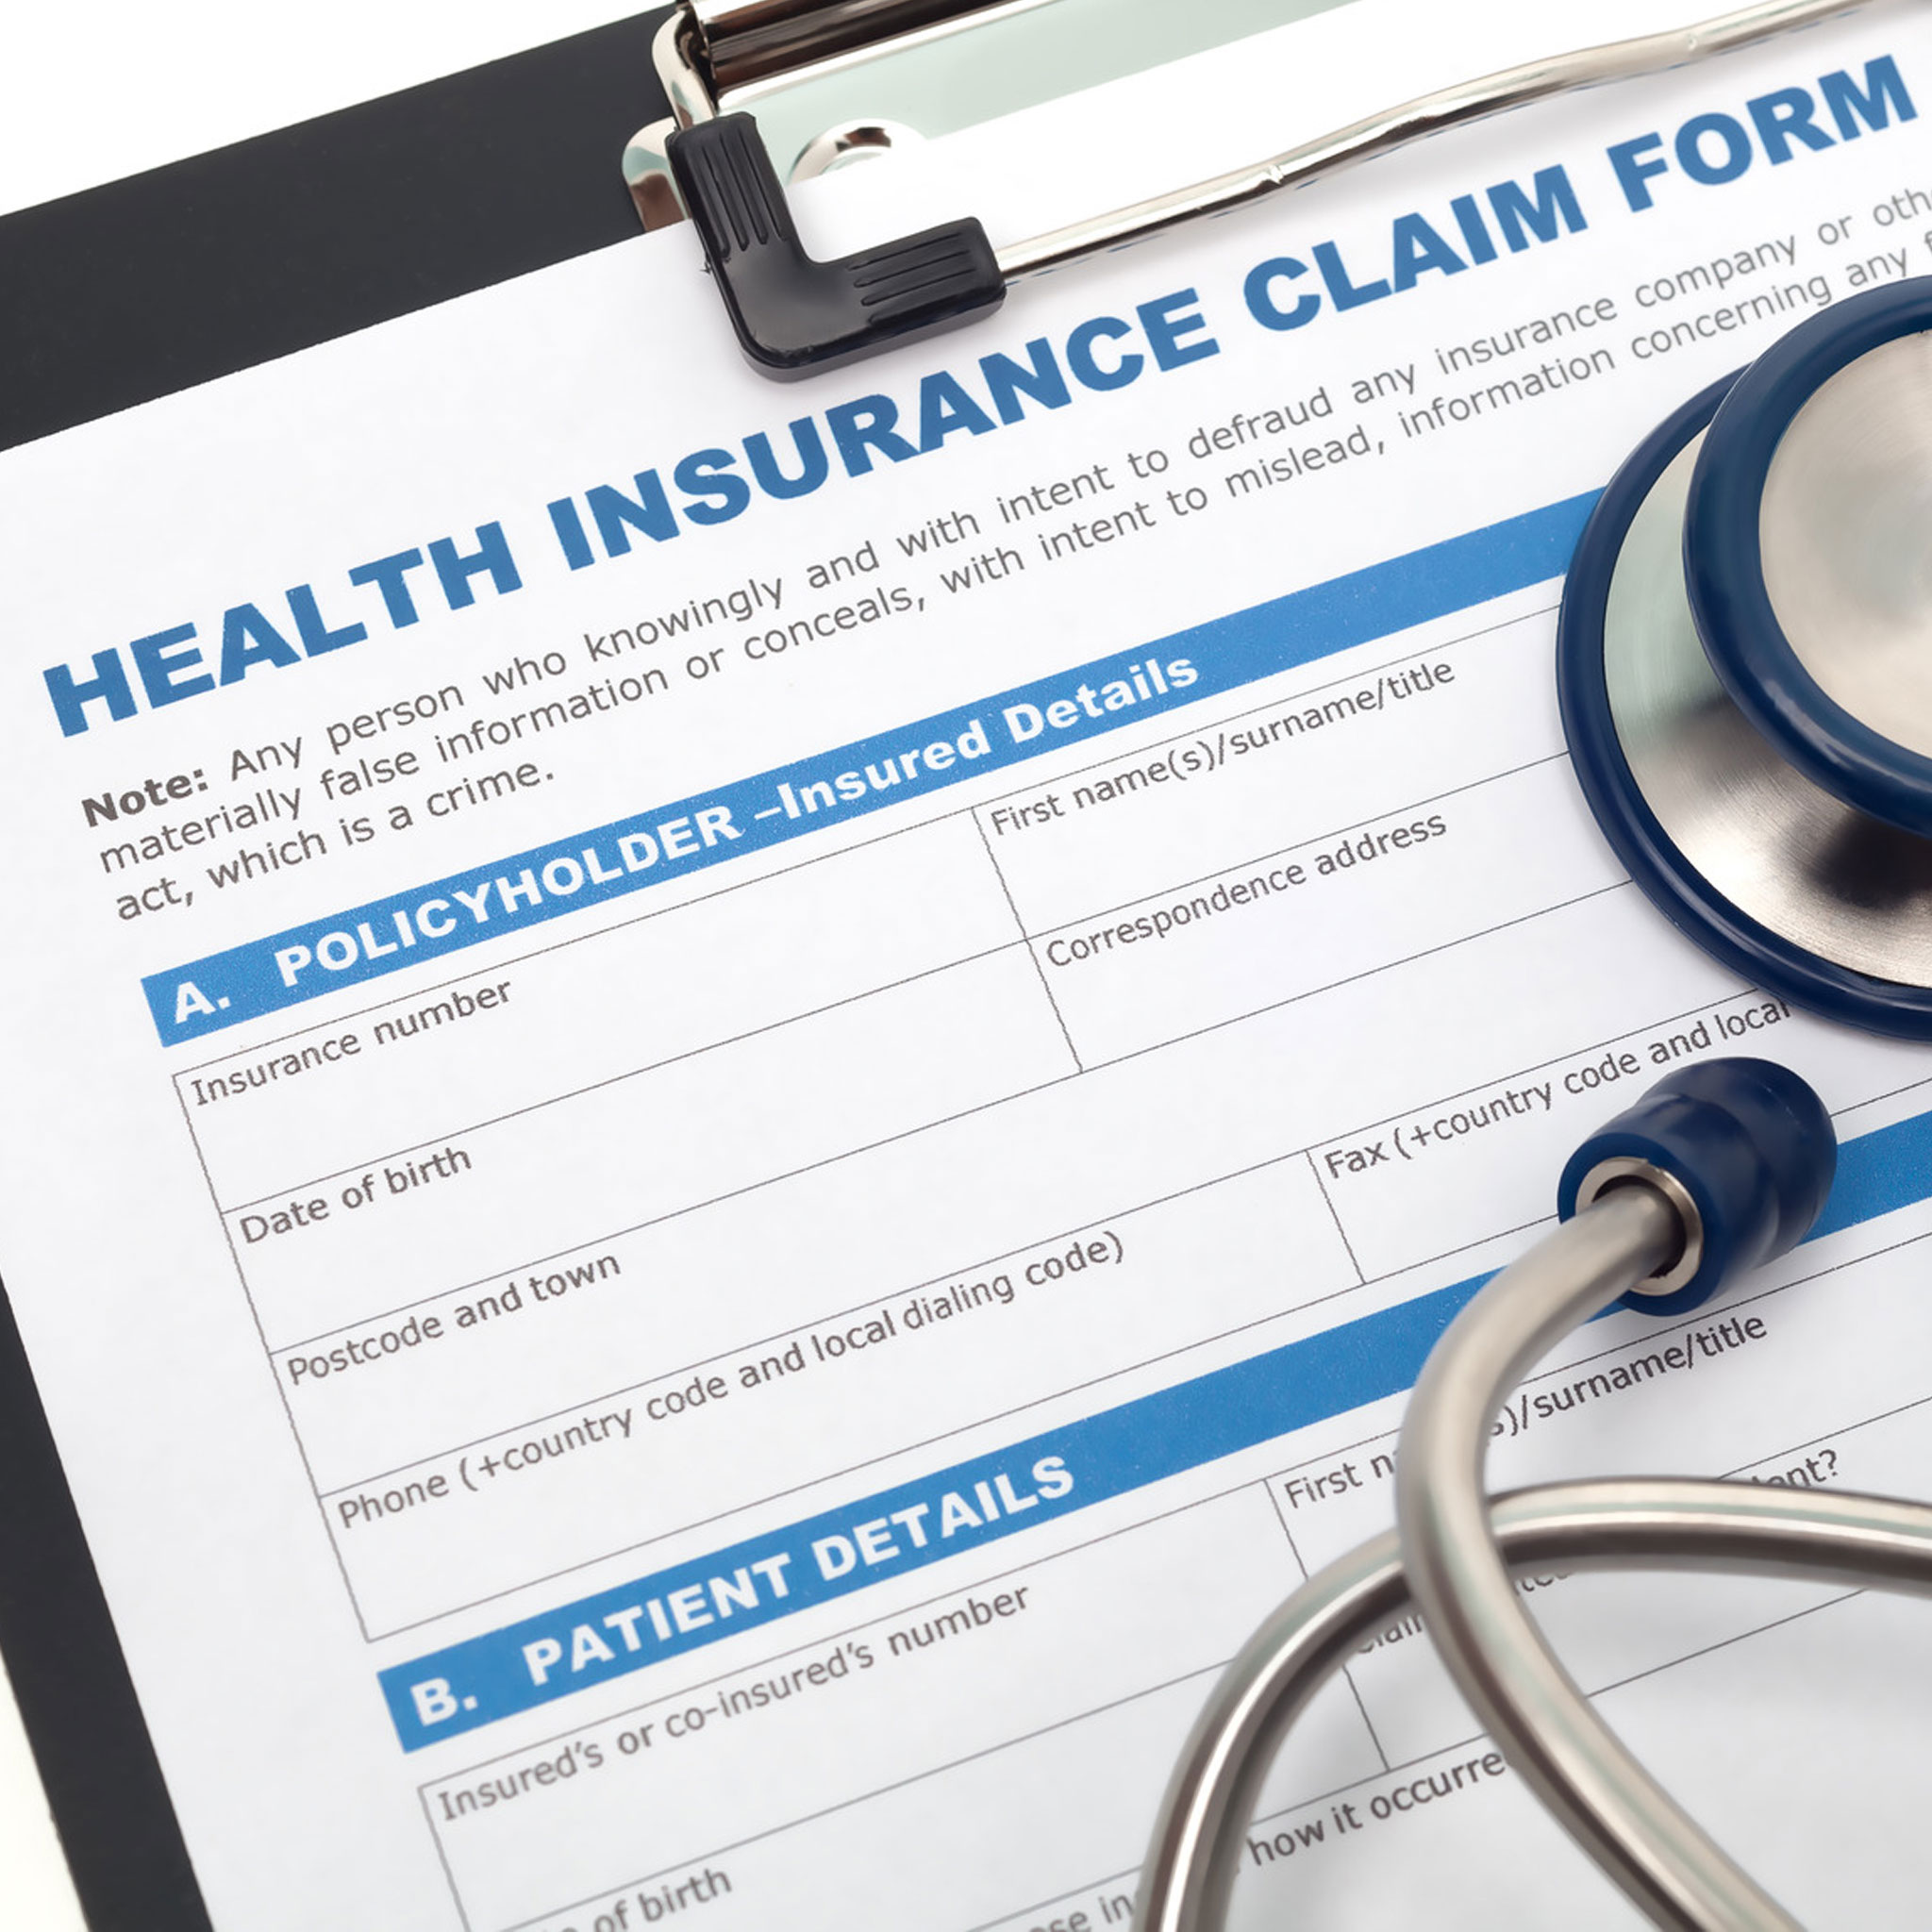 Is long-term care insurance right for you? Some pros and cons